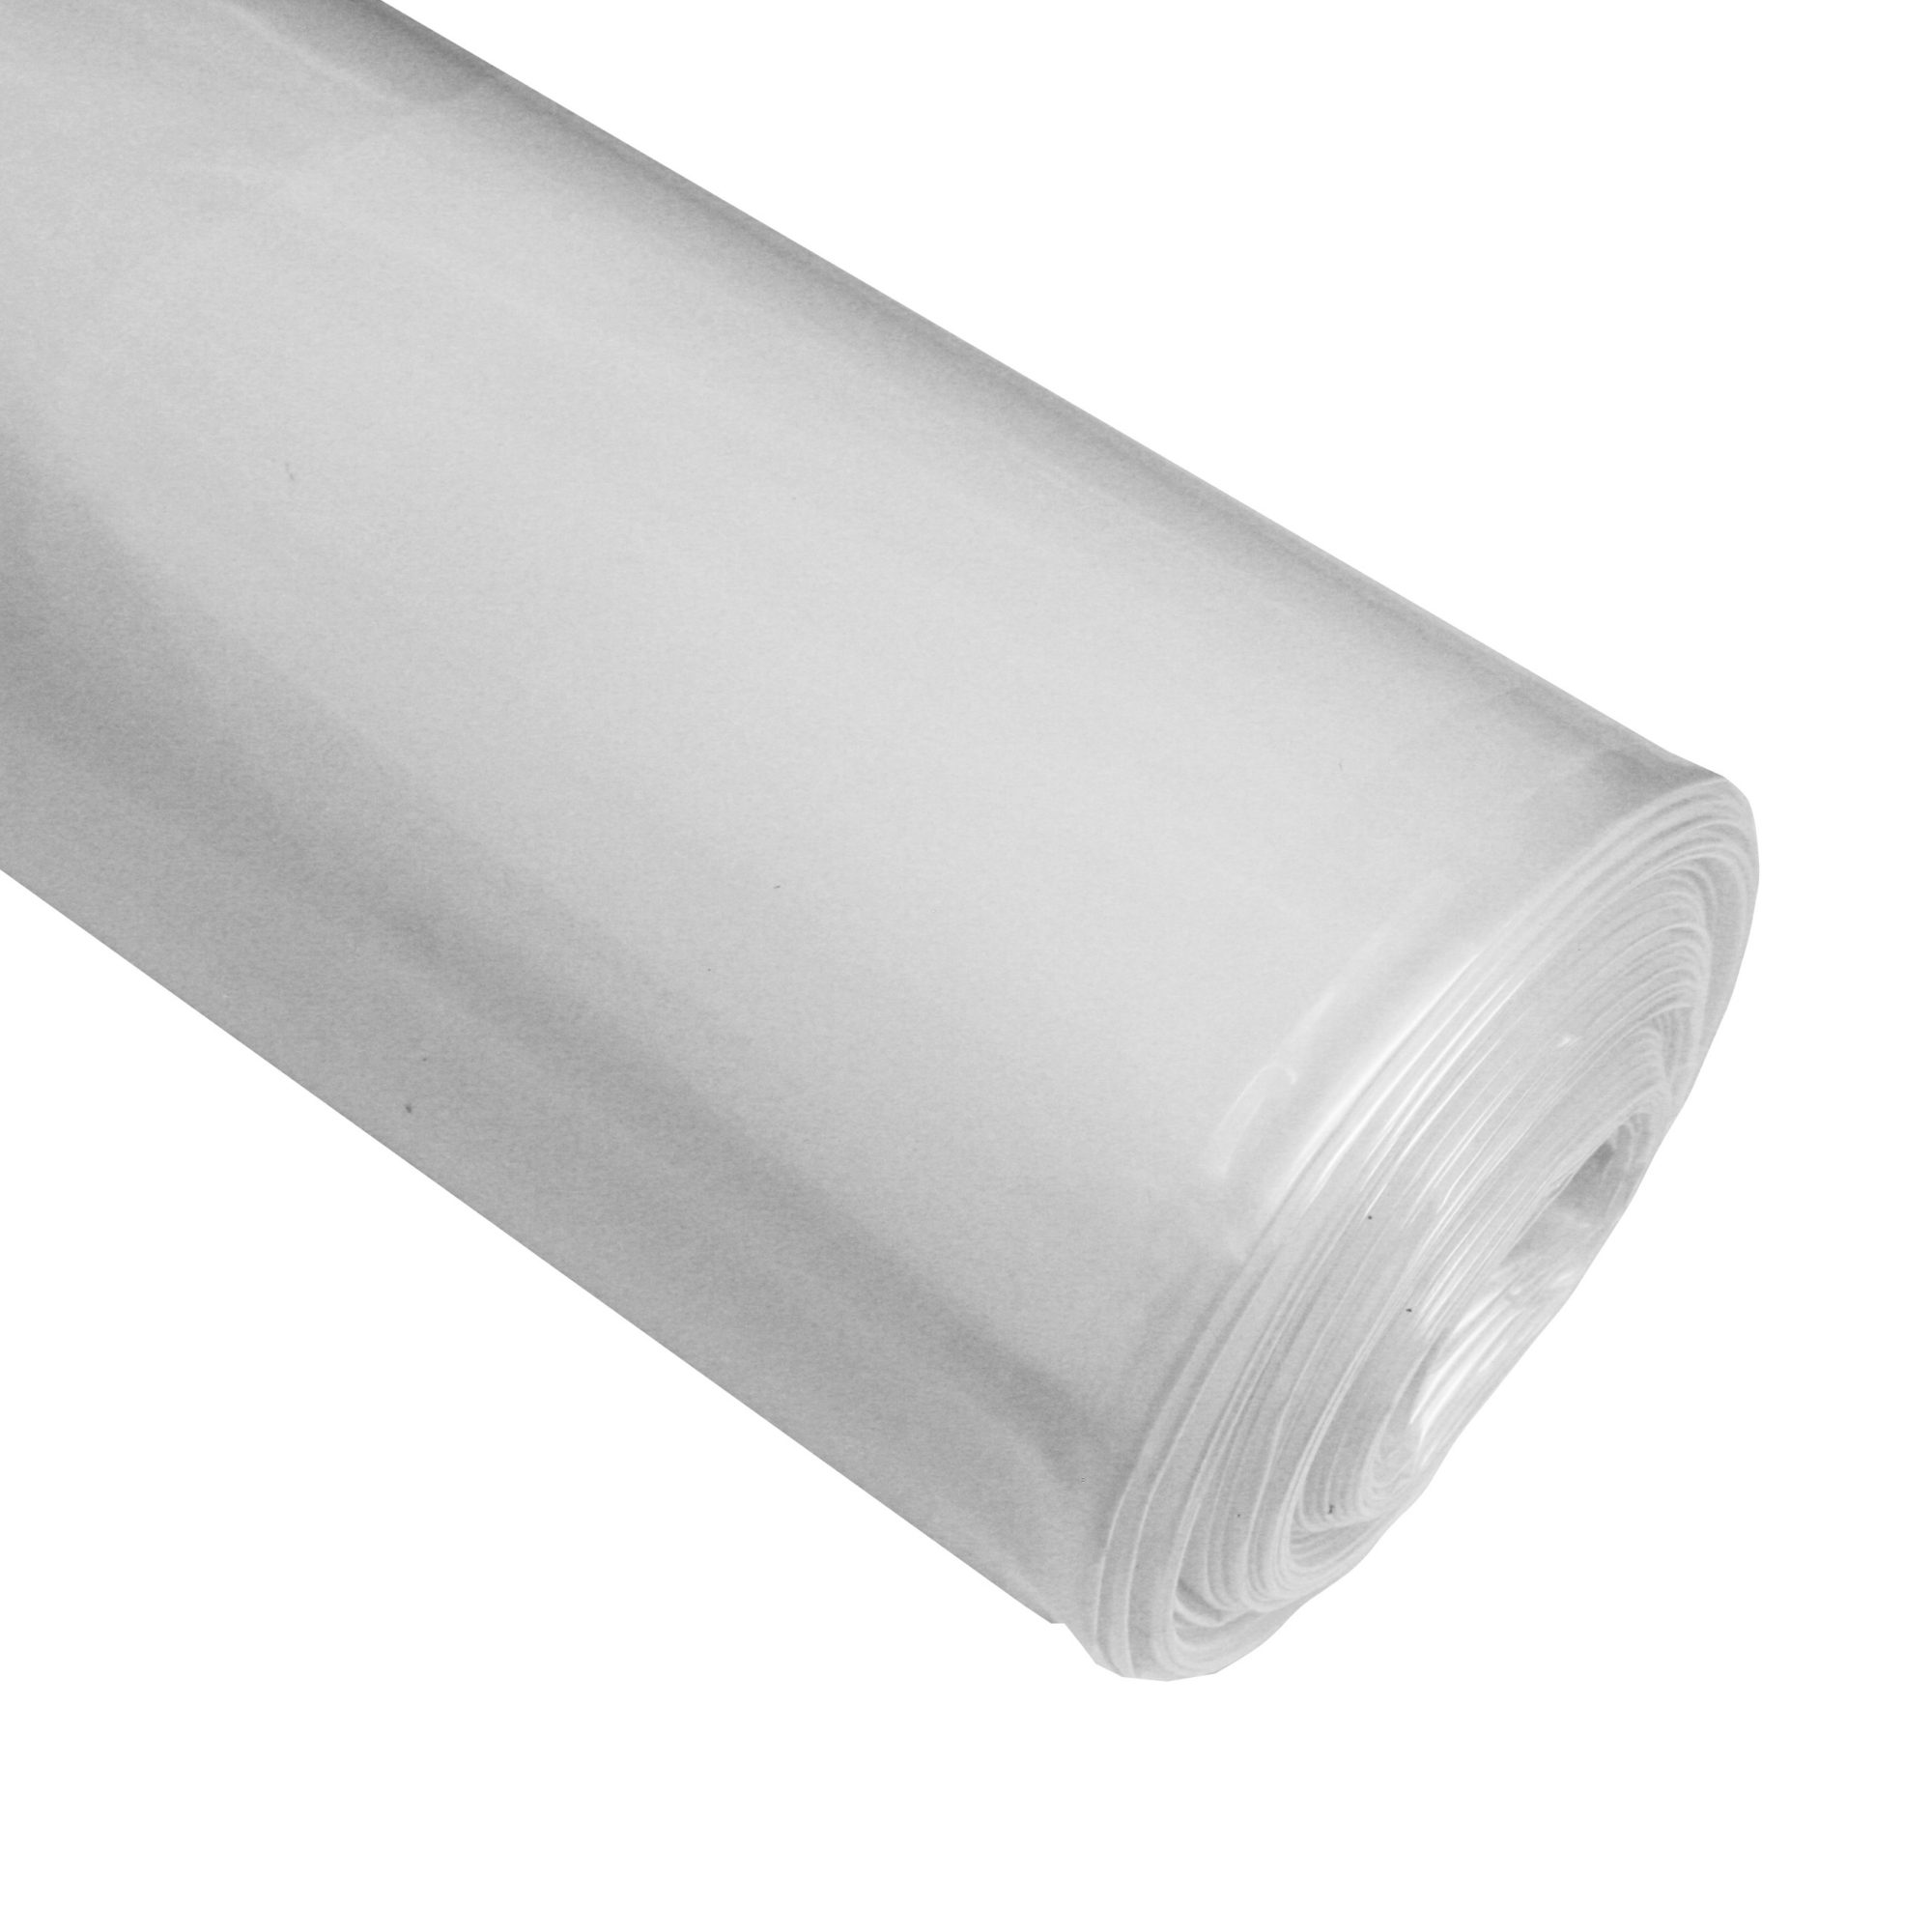 POLYETHYLENE FILM CLEAR